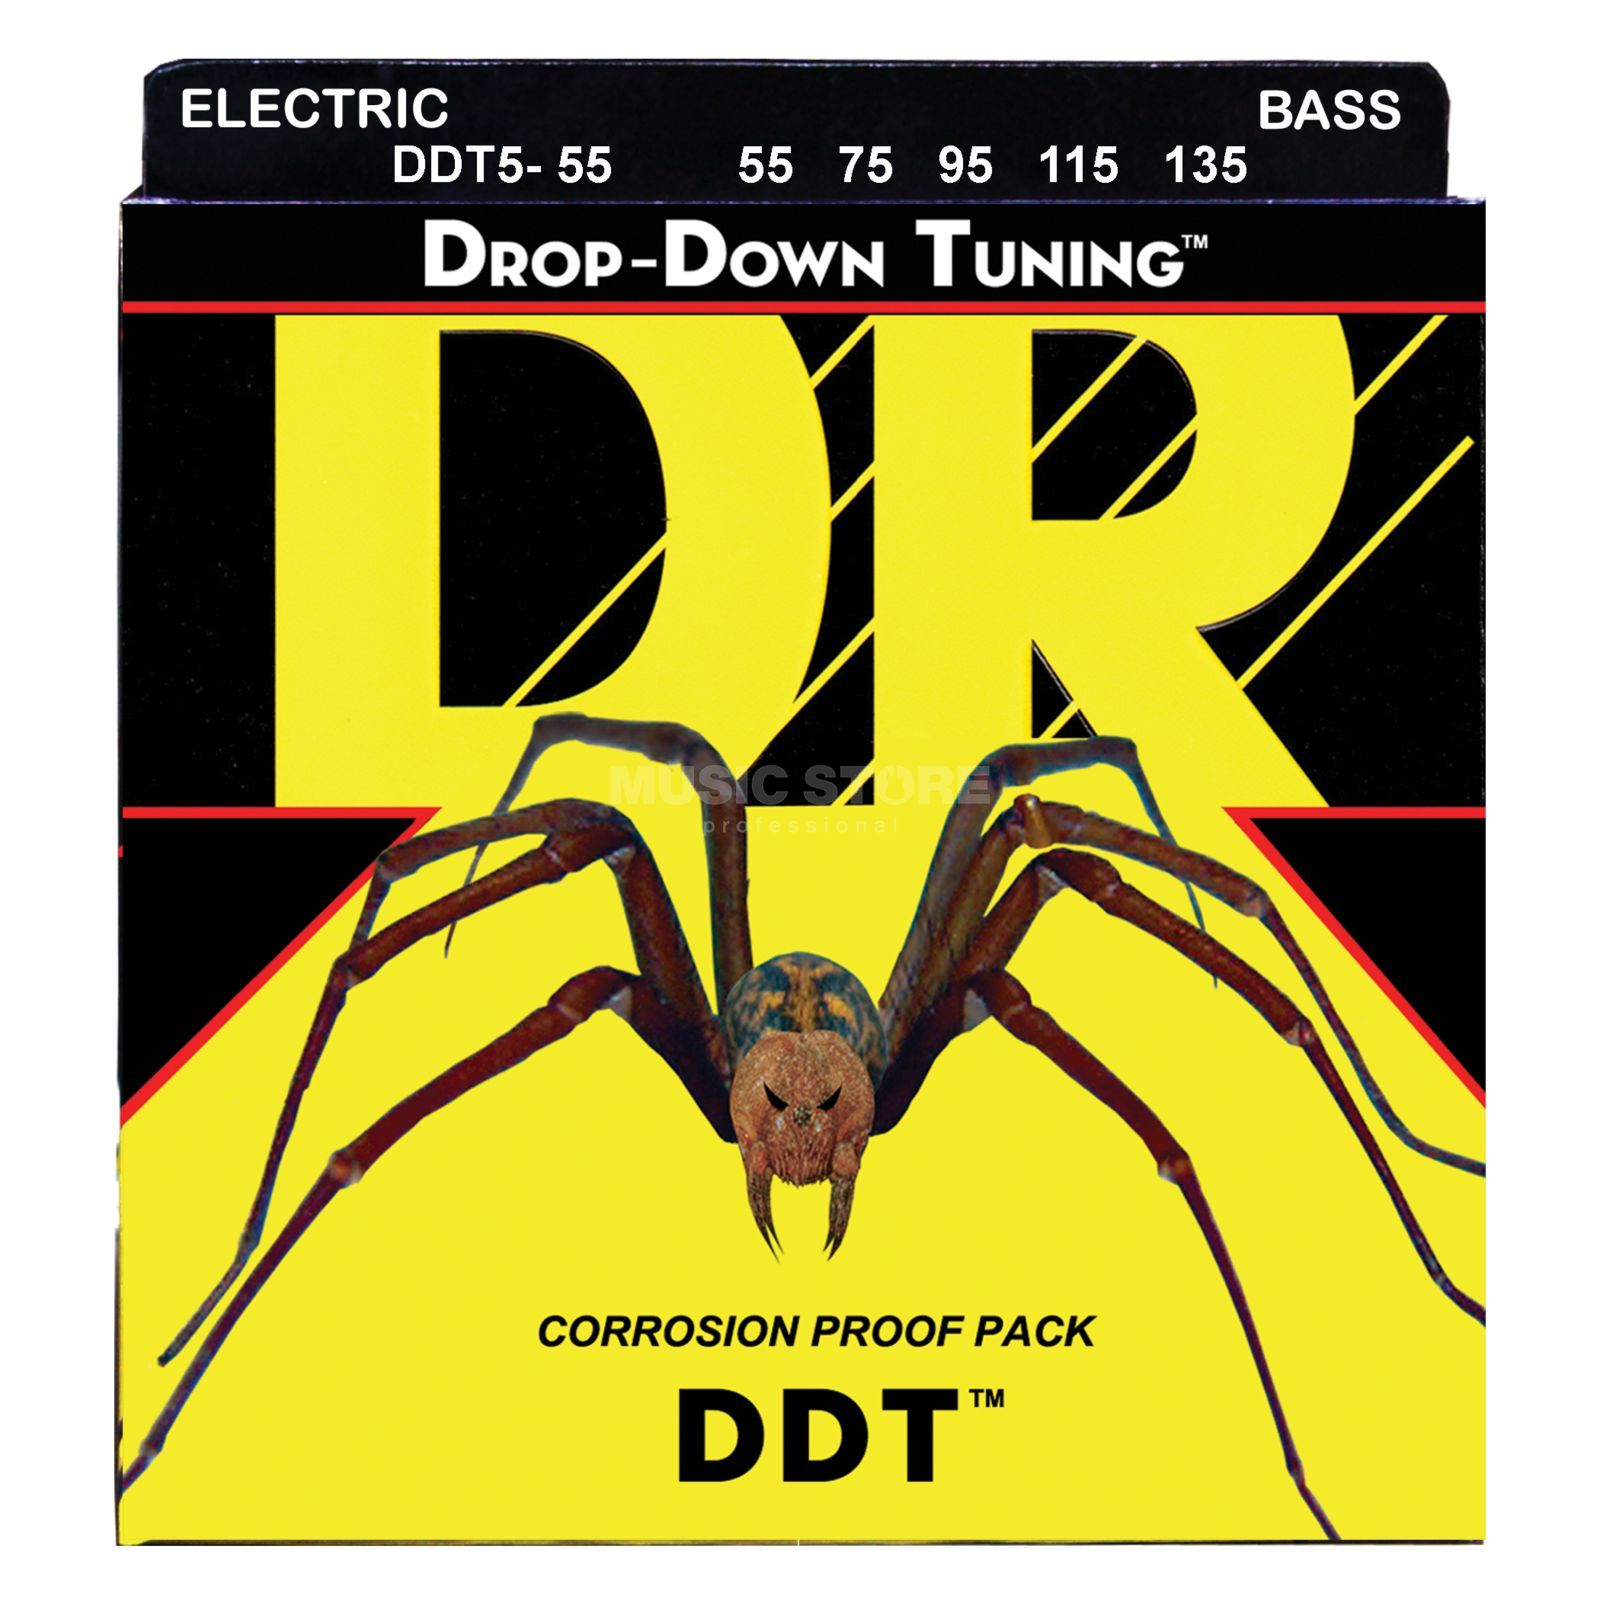 DR 5 Bass Strings 55-135 Drop-Down Tuning DDT5-55 Product Image